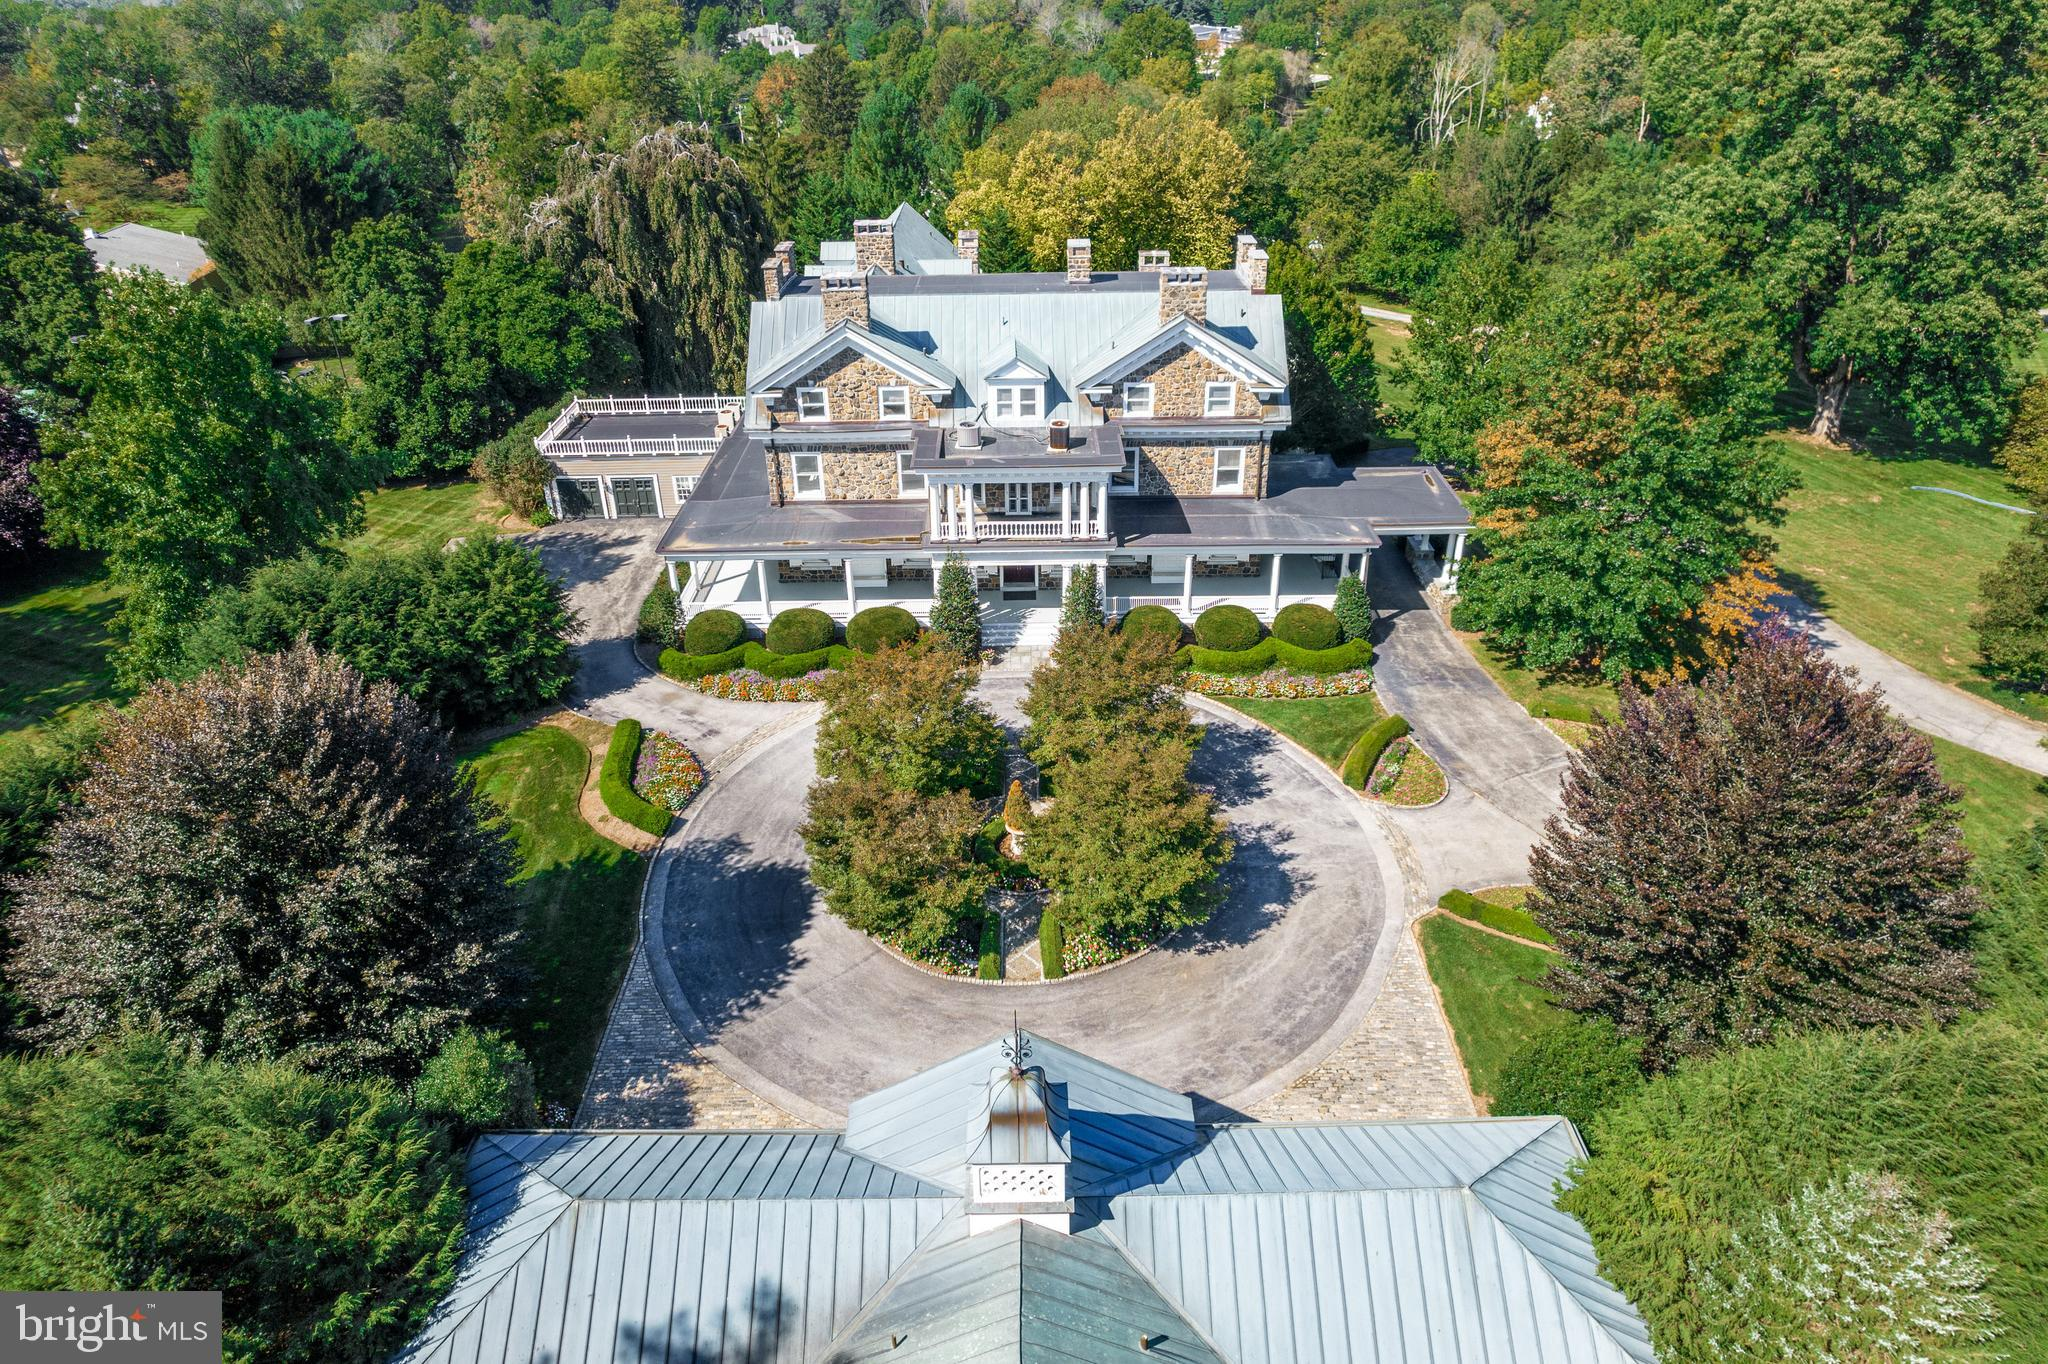 This grand, quintessential Devon estate offers the rare combination of a beautifully restored, tastefully updated and expanded, Georgian Revival residence, set on a breathtakingly landscaped, private, flat 5.19 acre lot , complete with 6-car garage/ carriage house, stunning pool, expansive terraces and destination tennis court.  Look no further and enjoy the graciously proportioned sun-filled rooms with high ceilings, perfectly restored original oak floors, incredible crown moldings, hand crafted architectural features and millwork, massive pocket doors, 6 fireplaces, renovated gourmet kitchen opening up to a fabulous 2-story family room with French doors leading out to the expansive terraces and gardens,  first floor movie theater/ media room, his and hers  offices with  incredible cherry paneling , built-ins and fireplaces, elevator providing easy access to all 4 levels of the residence, expanded master suite with large bright bedroom, renovated marble bathroom with radiant heated floors, soaking tub, frameless glass shower and walk-in dressing room,  8 additional bedrooms which could easily be incorporated together offer expanded guest, au pair and in-law suites, updated electric and HVAC systems, bone dry basement with elevator access, impeccably maintained. This gem offers it all and is close to renowned schools, shopping, restaurants, trains and just 30 minutes from Philadelphia International airport.